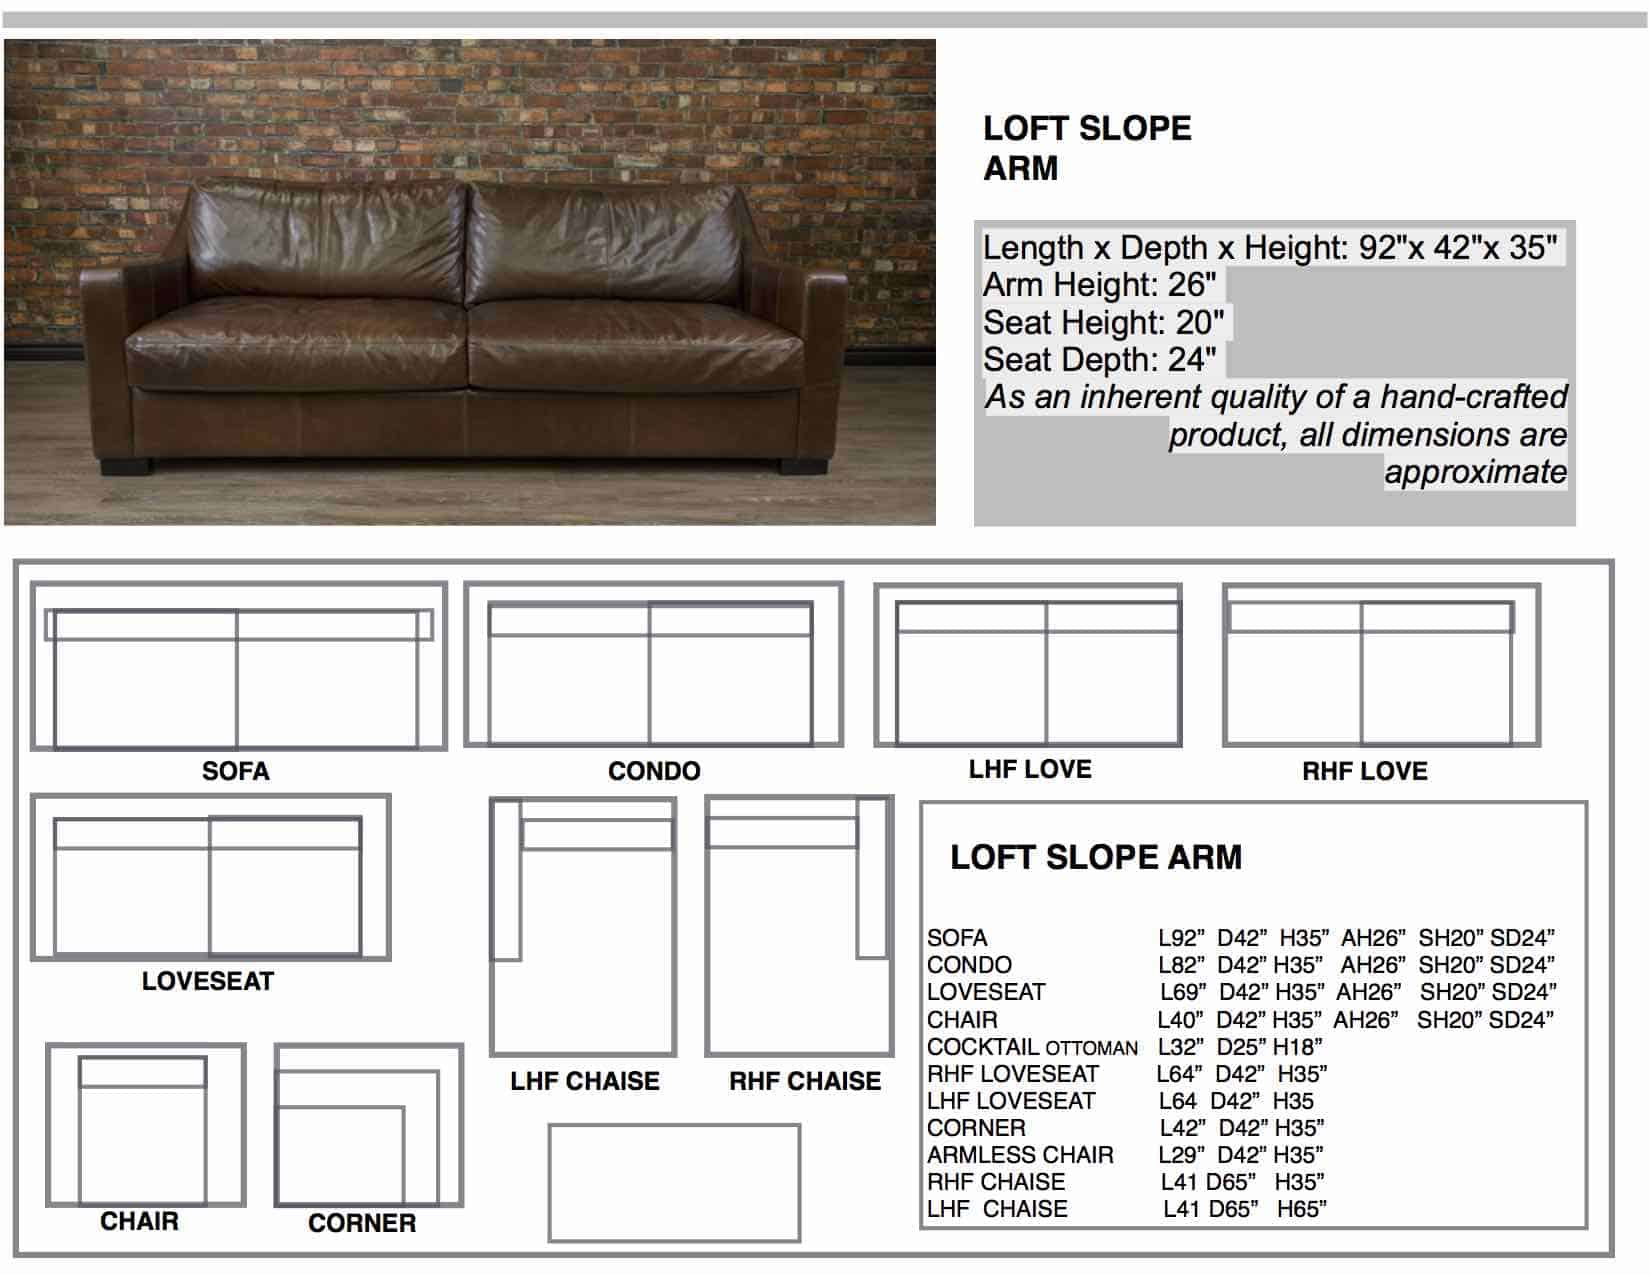 Loft Slope Arm Leather Sofa | Canada's Boss Leather Sofas And Furniture Intended For Loft Arm Sofa Chairs (Image 16 of 25)